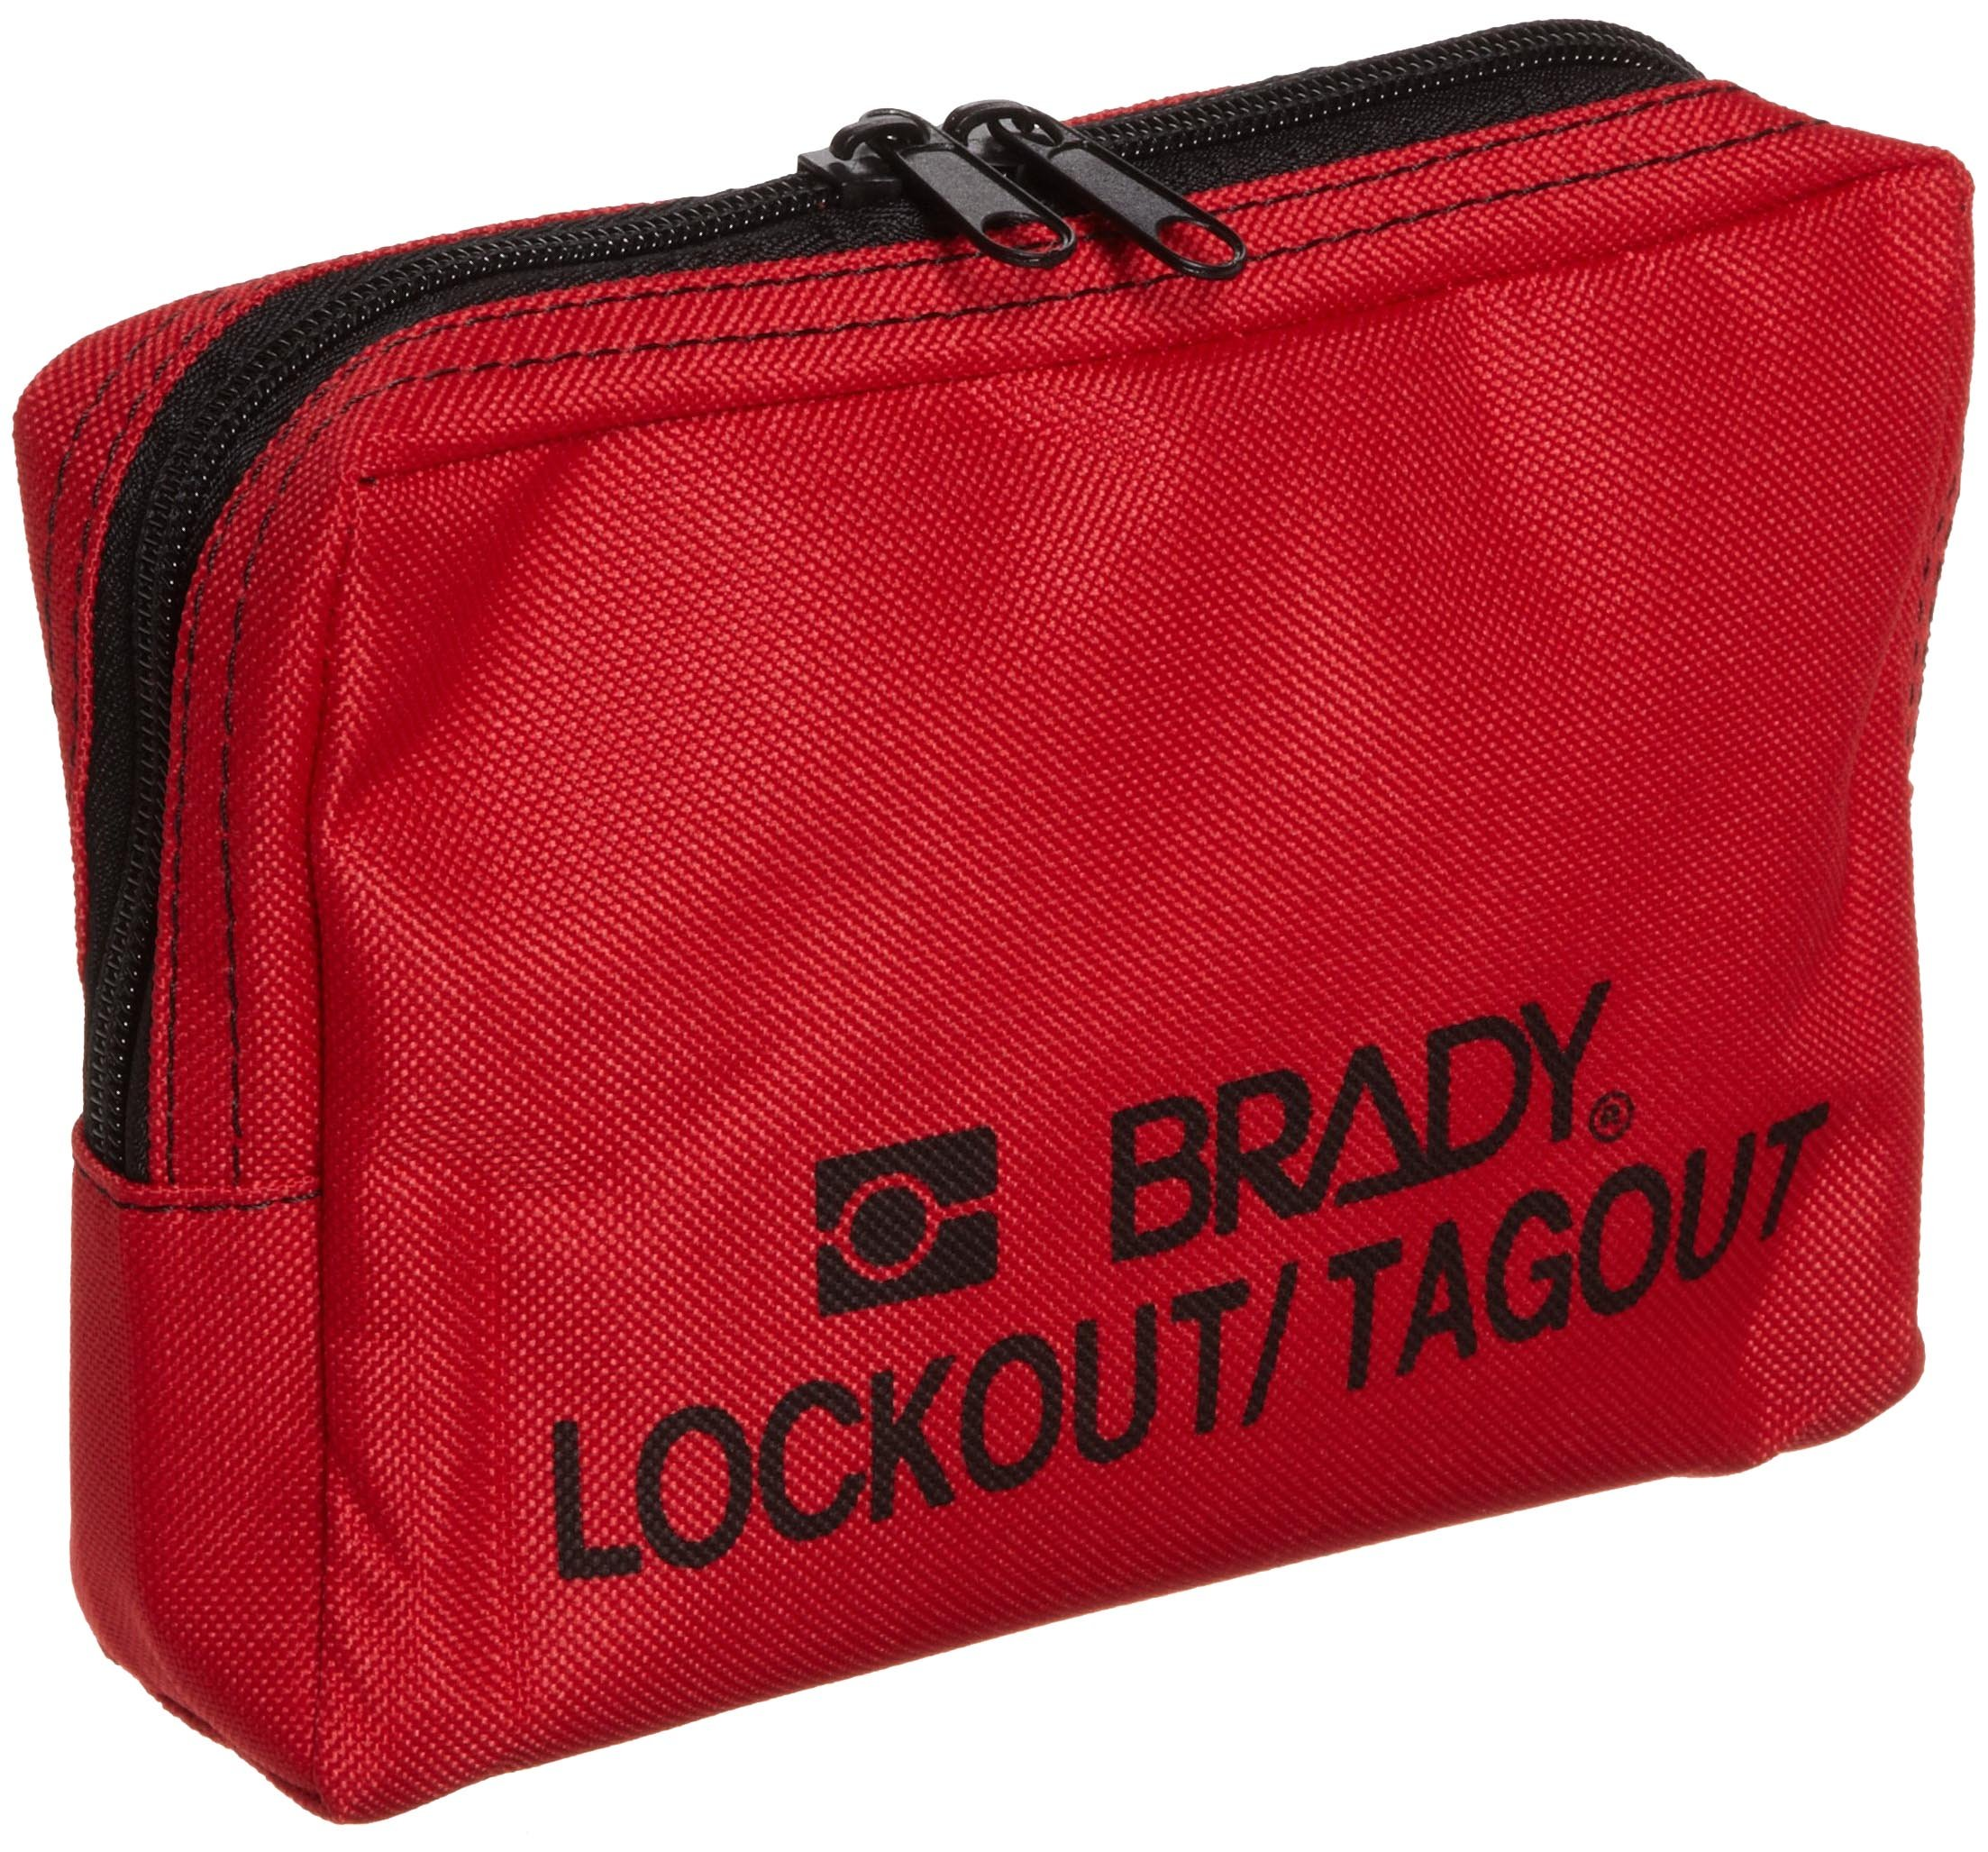 Brady Nylon Lockout Belt Pouch, Legend ''Brady Lockout / Tagout'' by Brady